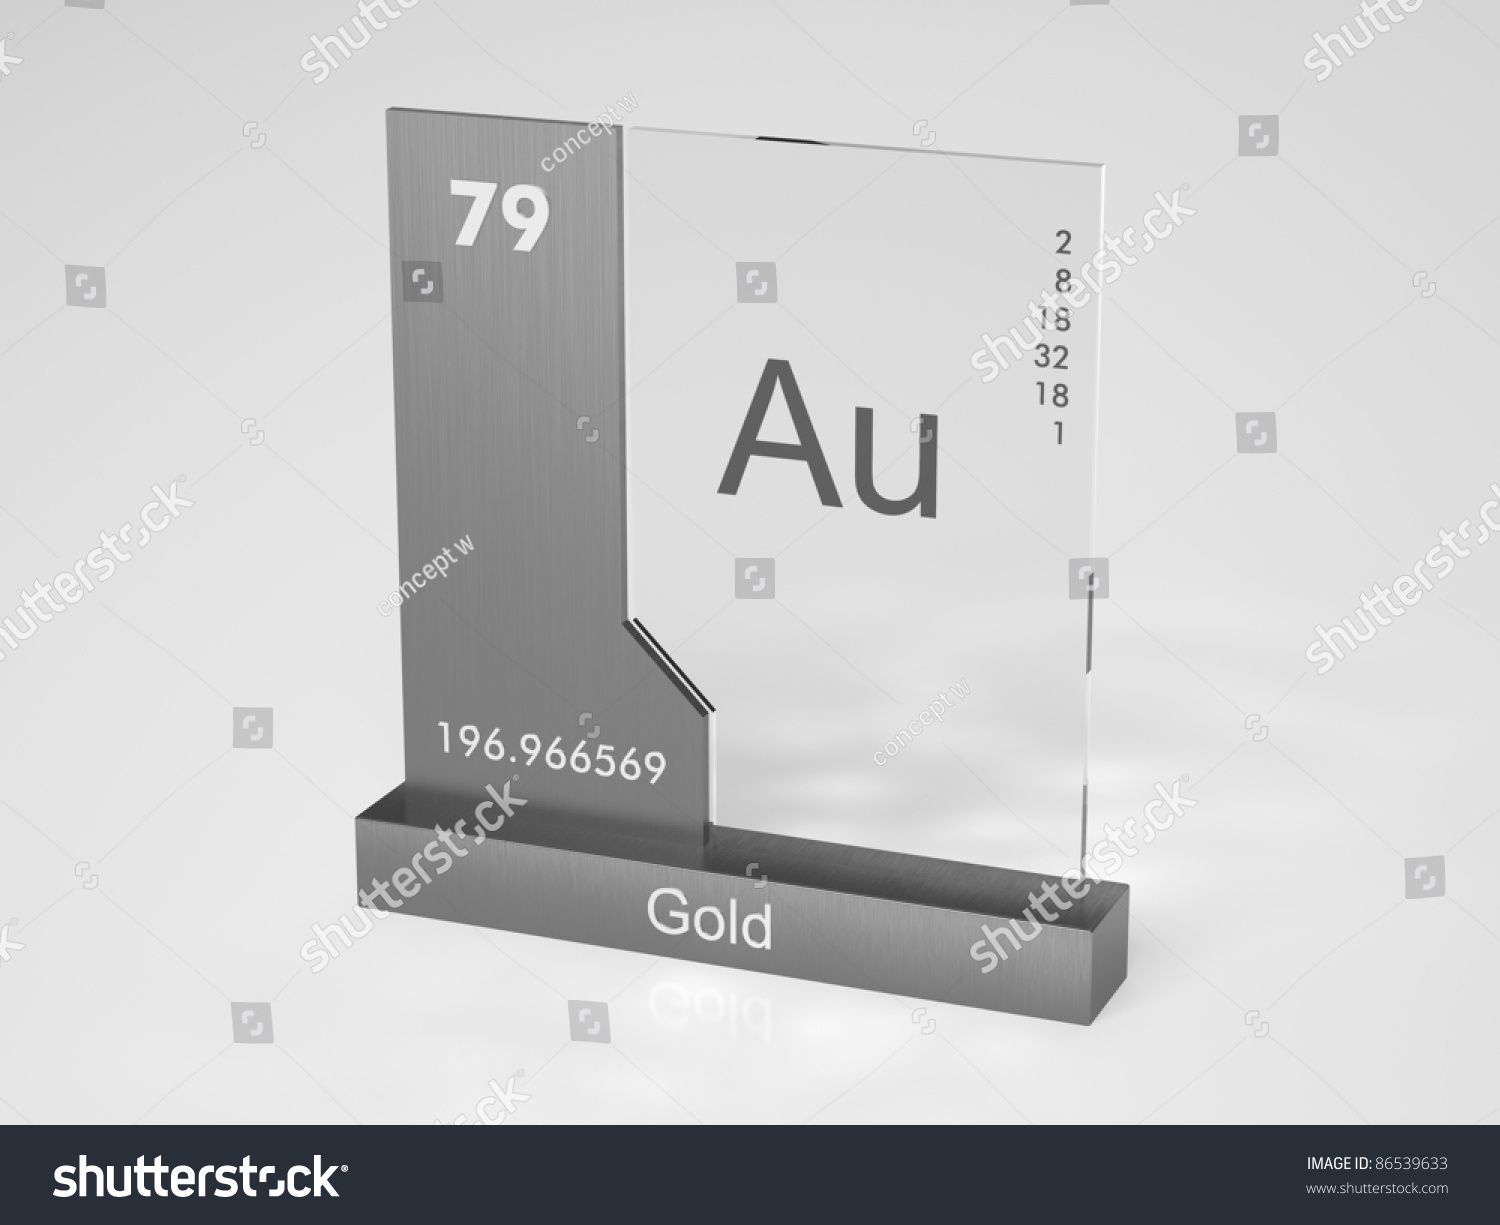 gold symbol au chemical element of the periodic table - Au Symbol Periodic Table